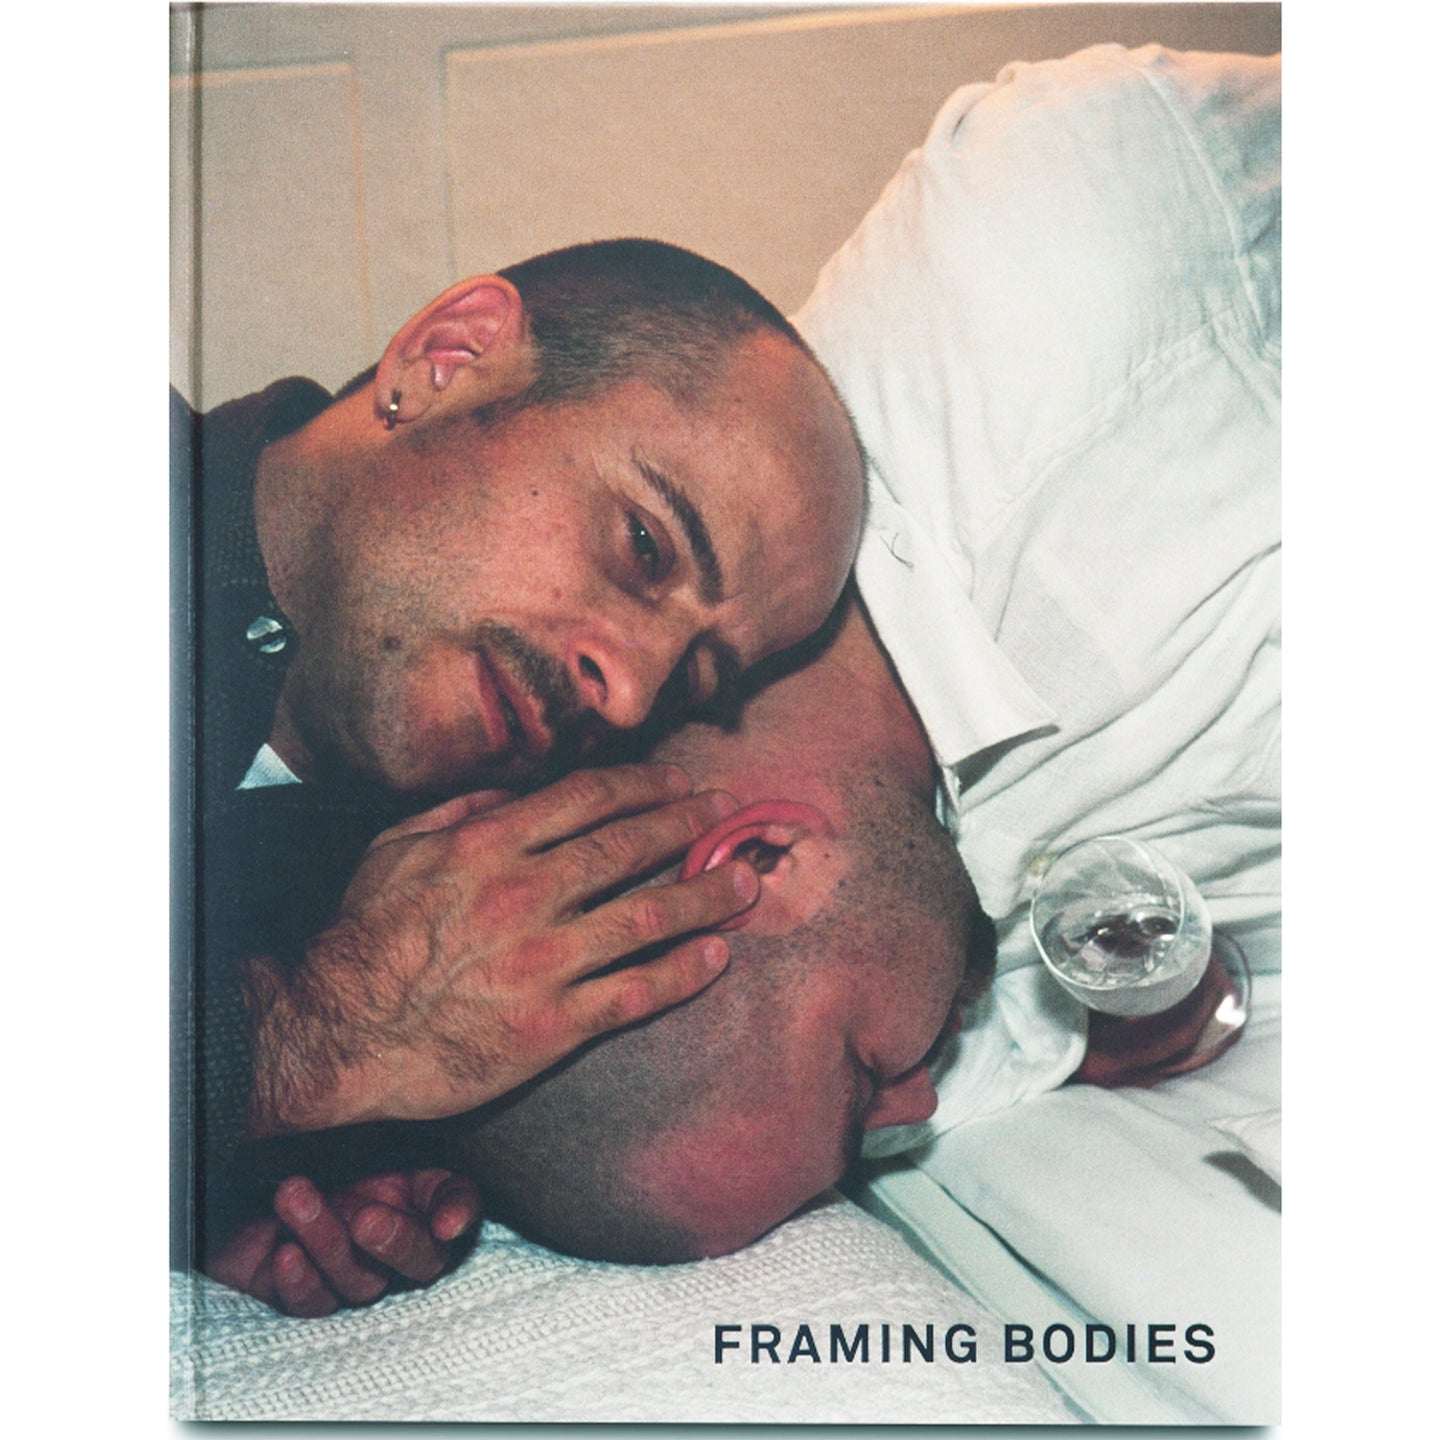 FRAMING BODIES